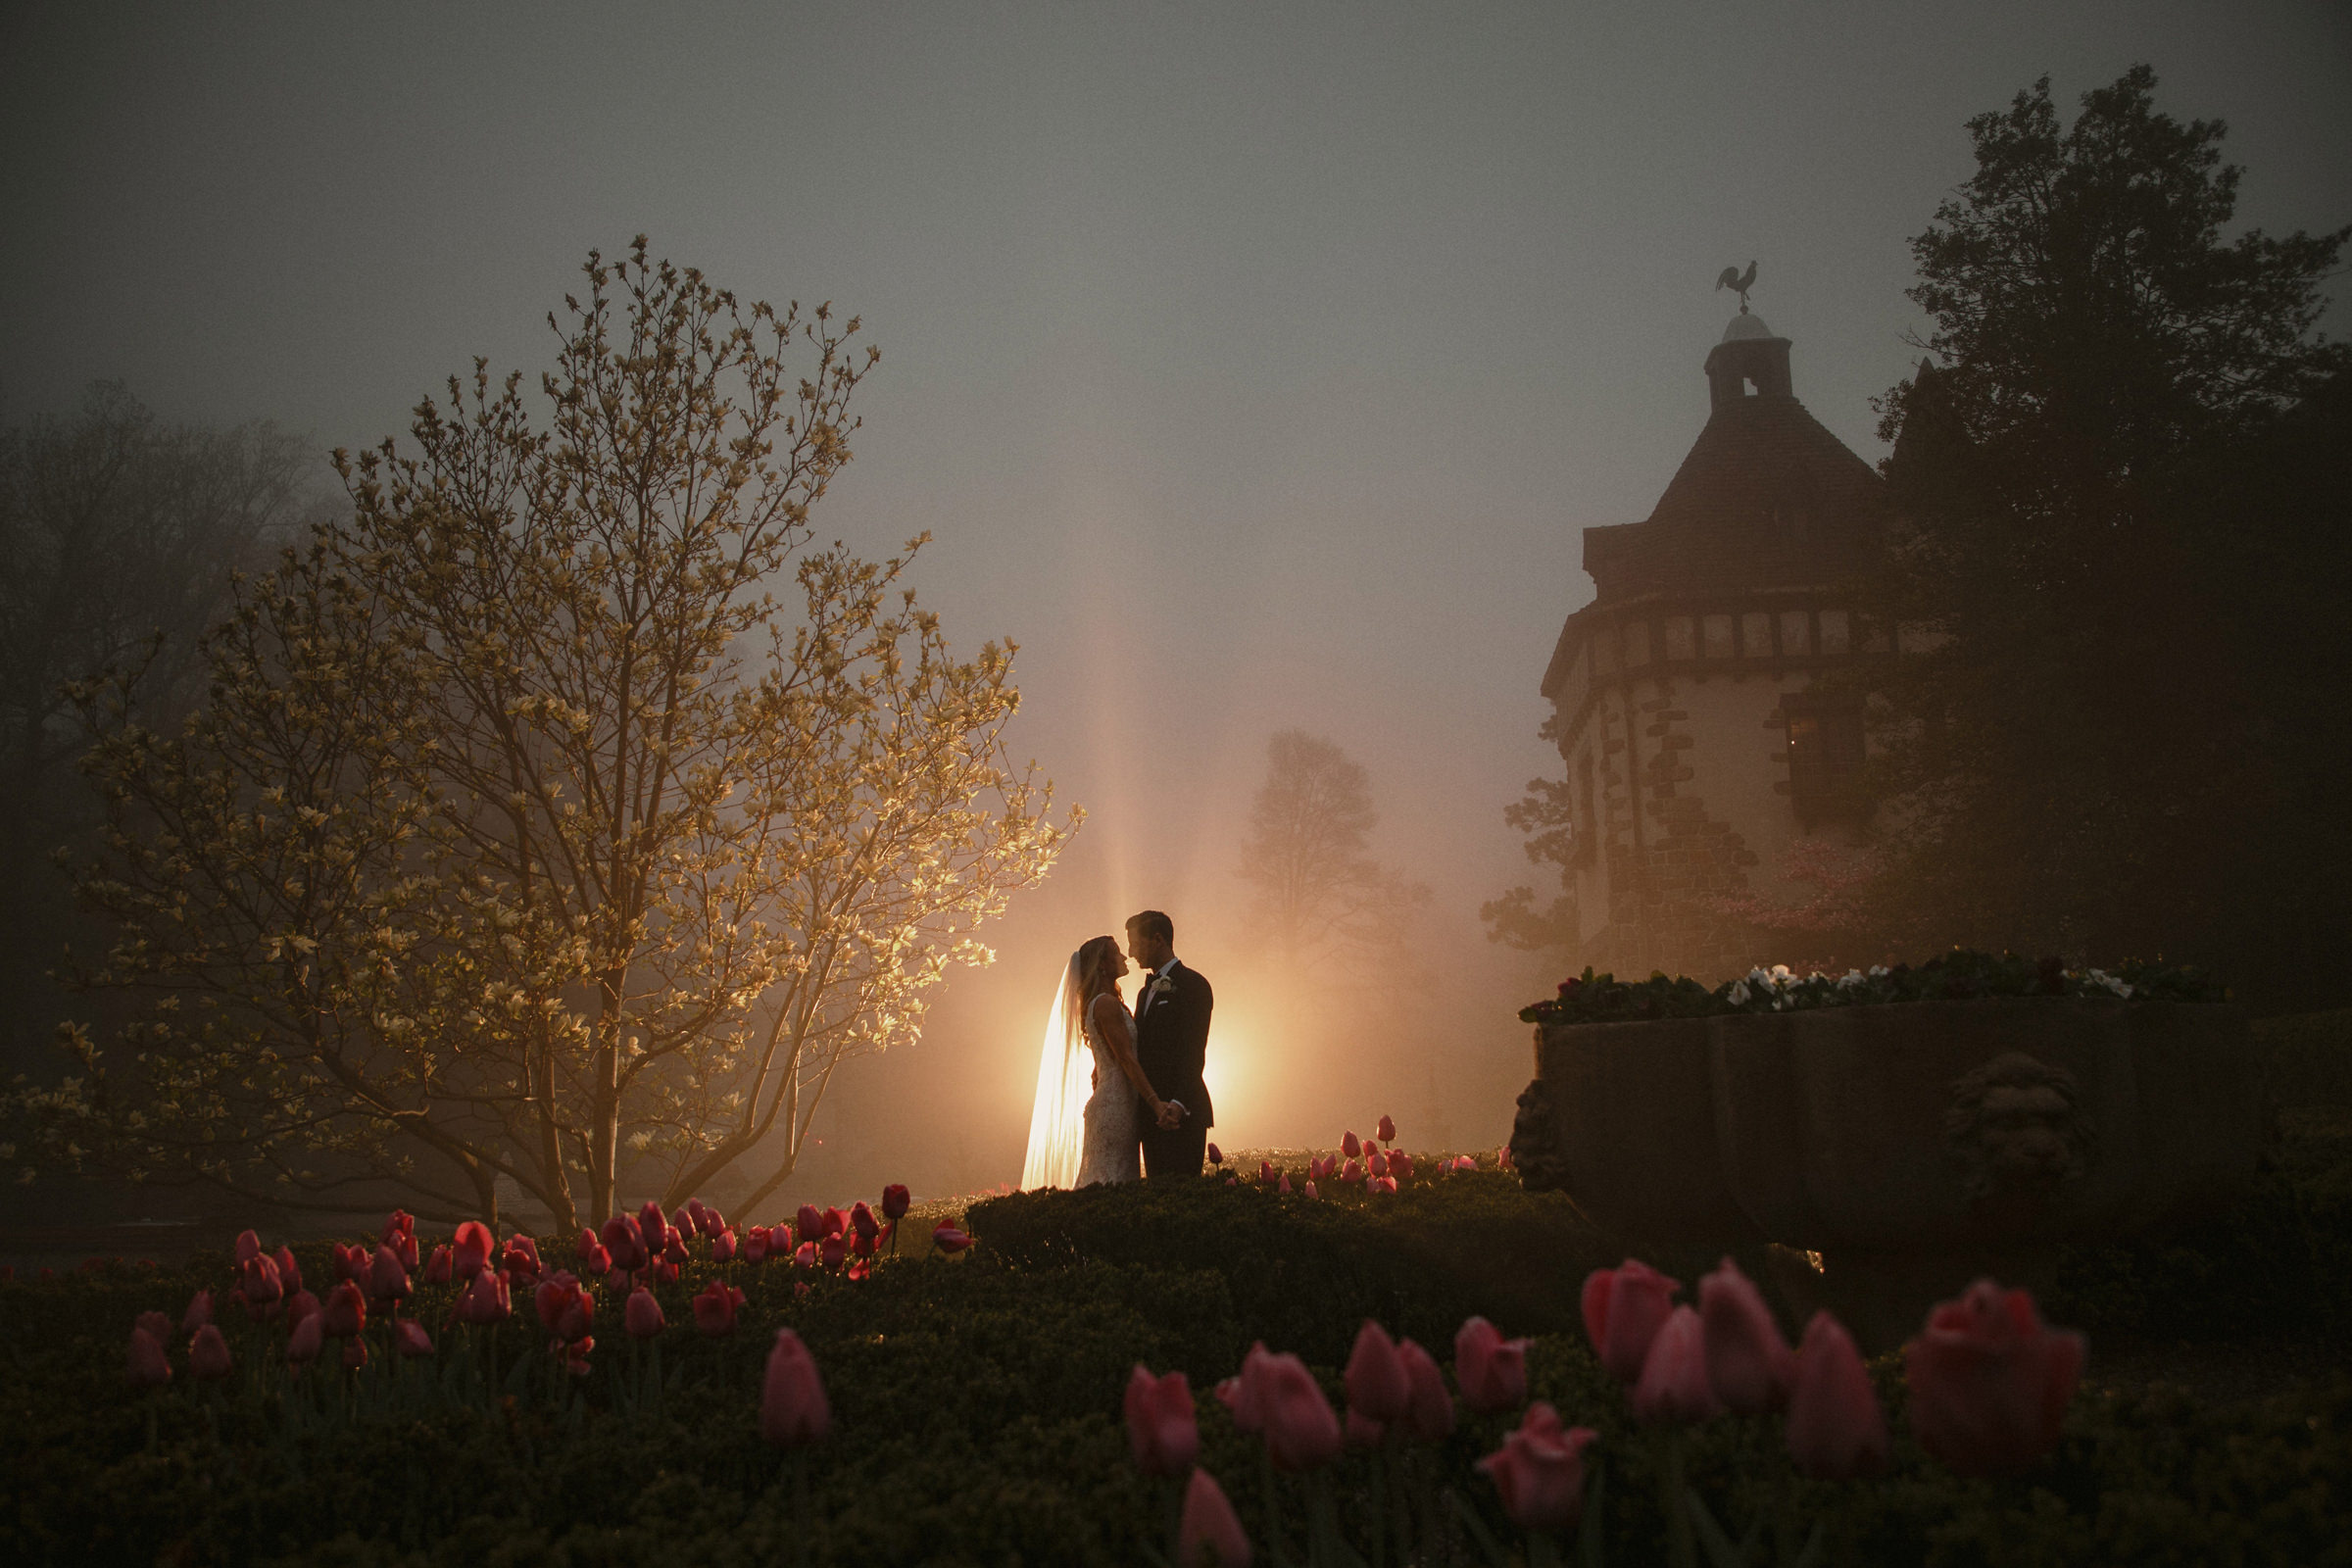 Bride and groom against bed of tulips - Photo by Susan Stripling Photography